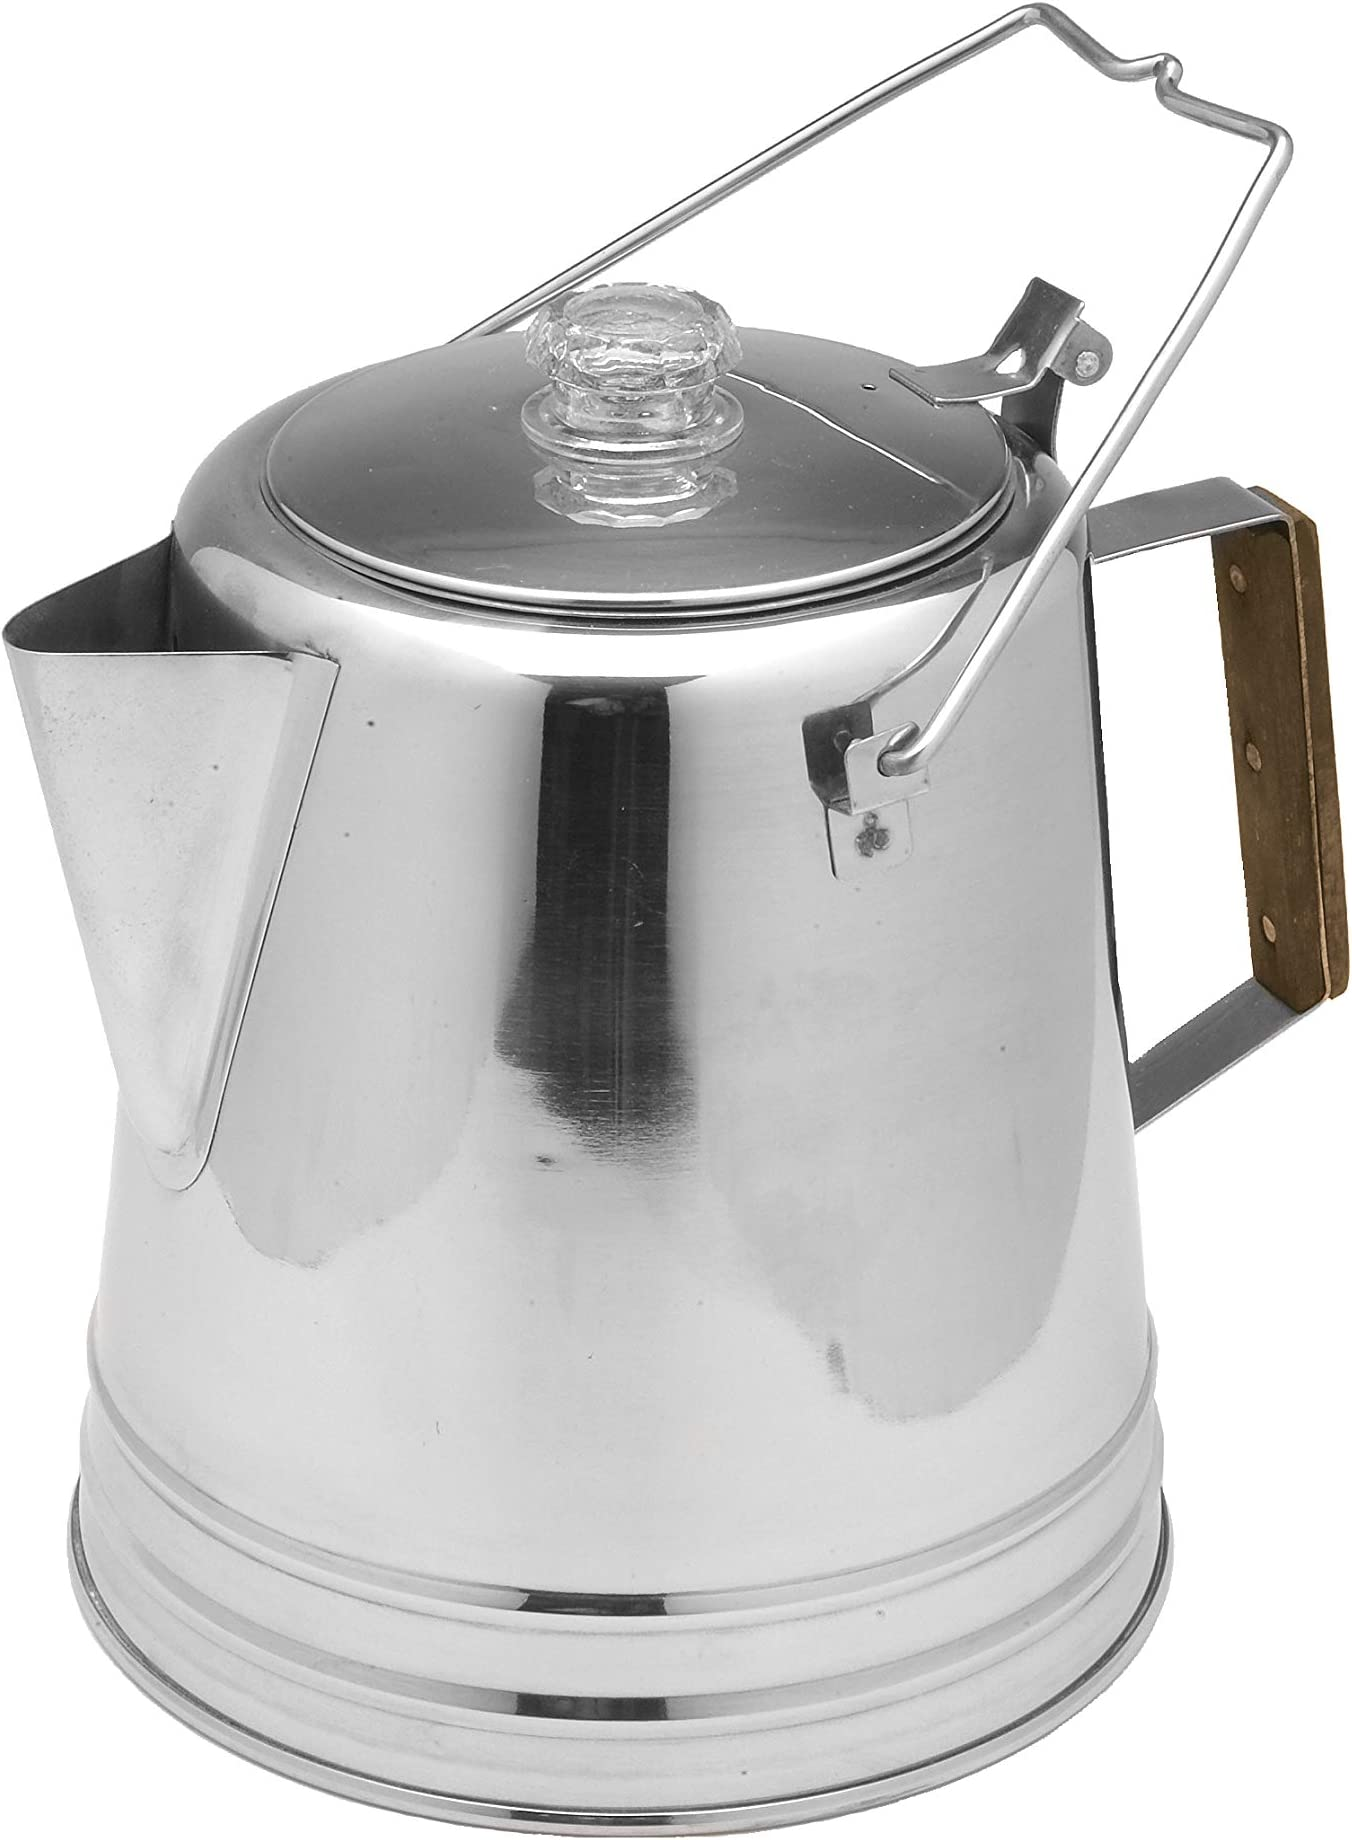 Outdoor Stainless Steel 9 Cup Percolator Camping Coffee Maker Tea Pot US O2K9